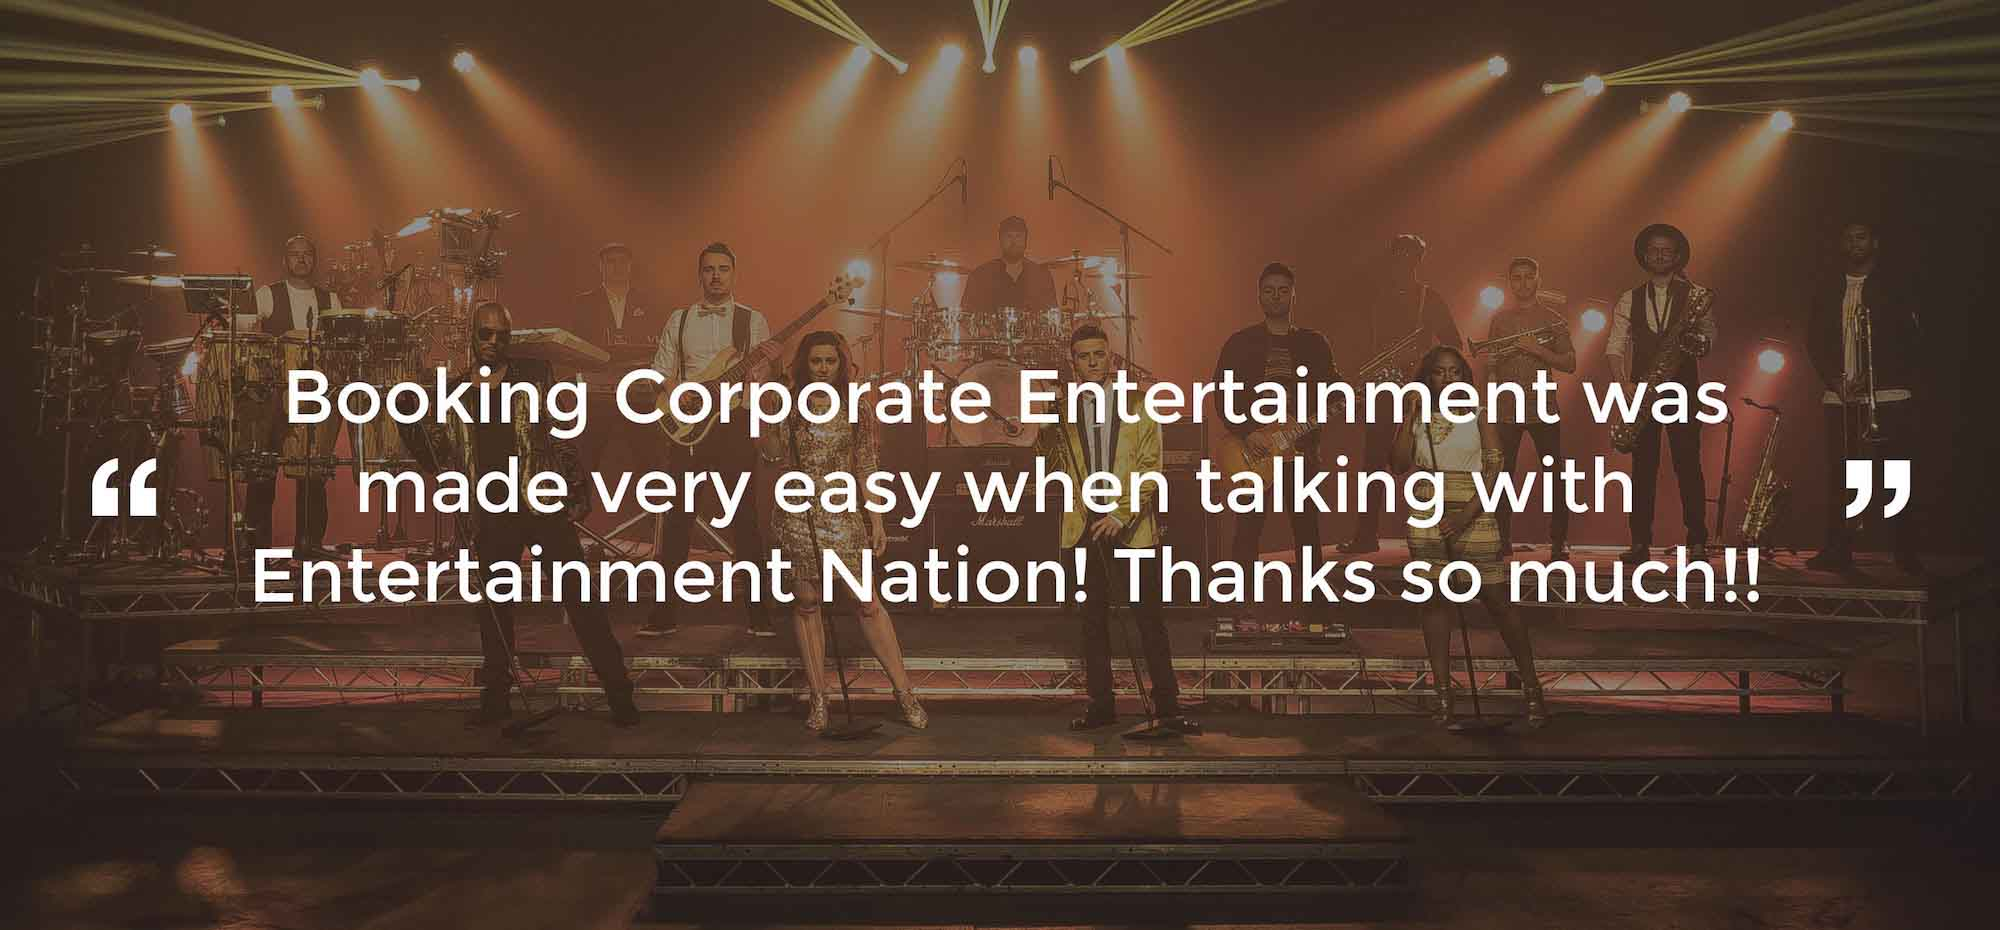 Client Review of Corporate Entertainment Cheshire